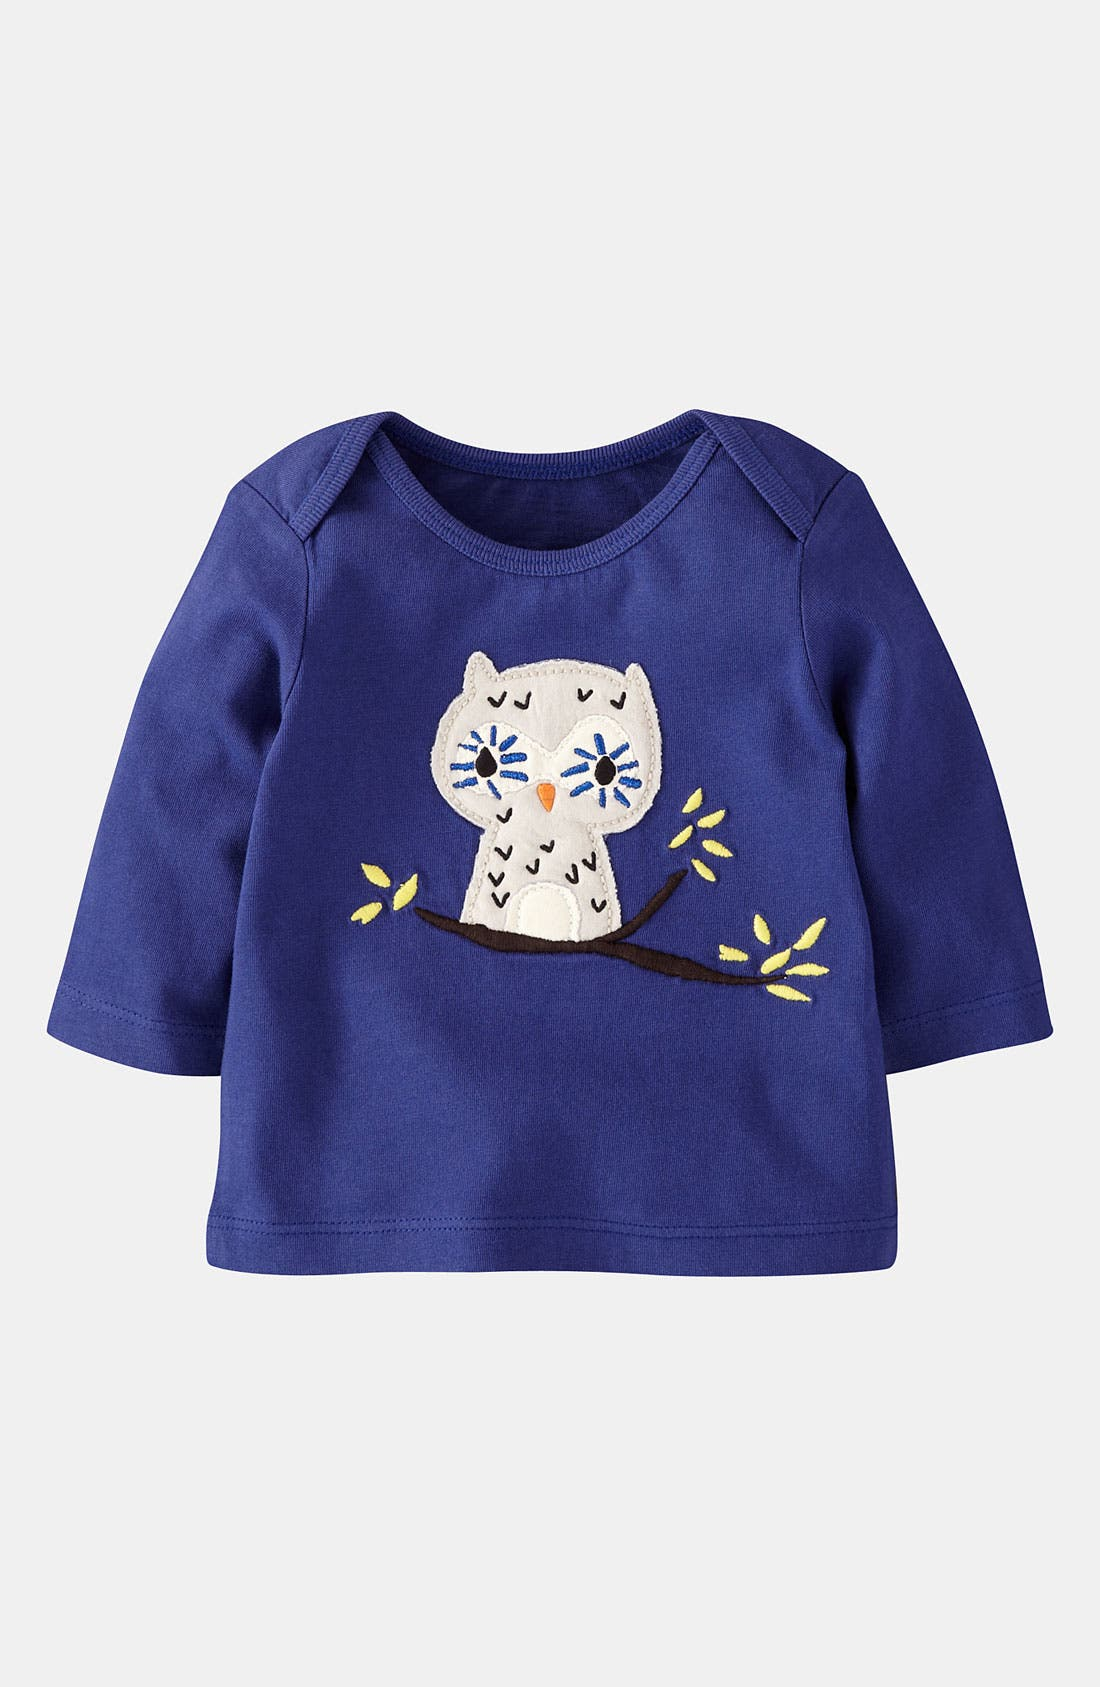 Alternate Image 1 Selected - Mini Boden 'Festive Friends' Tee (Infant)